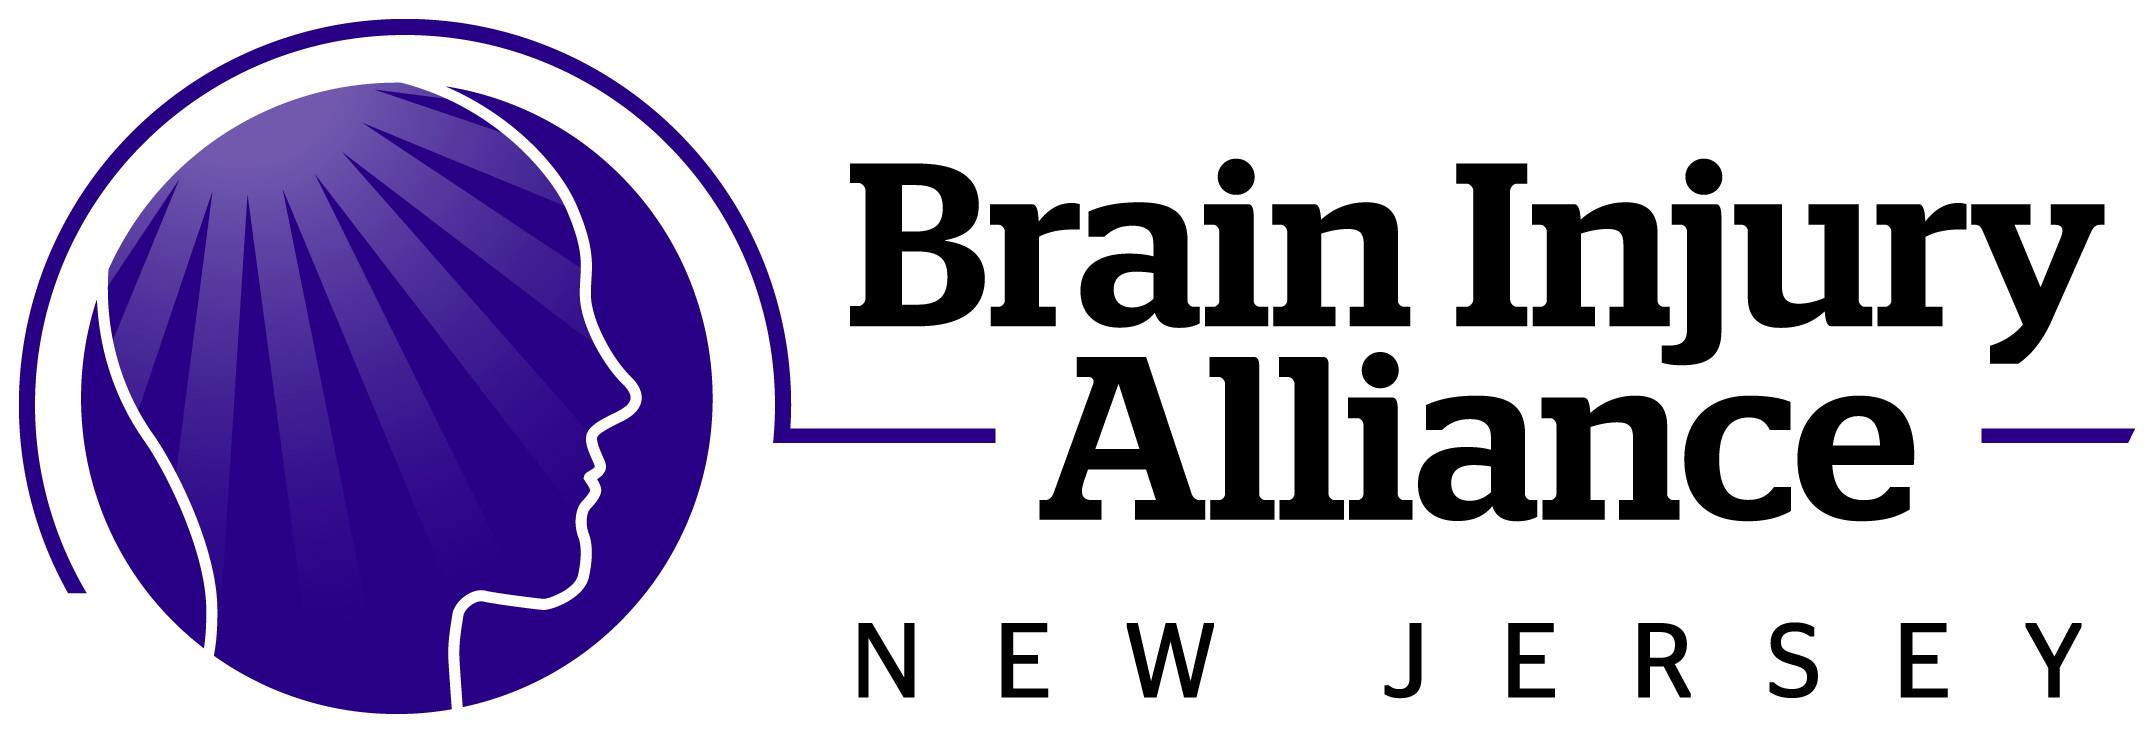 Brian Injury Alliance of New Jersey